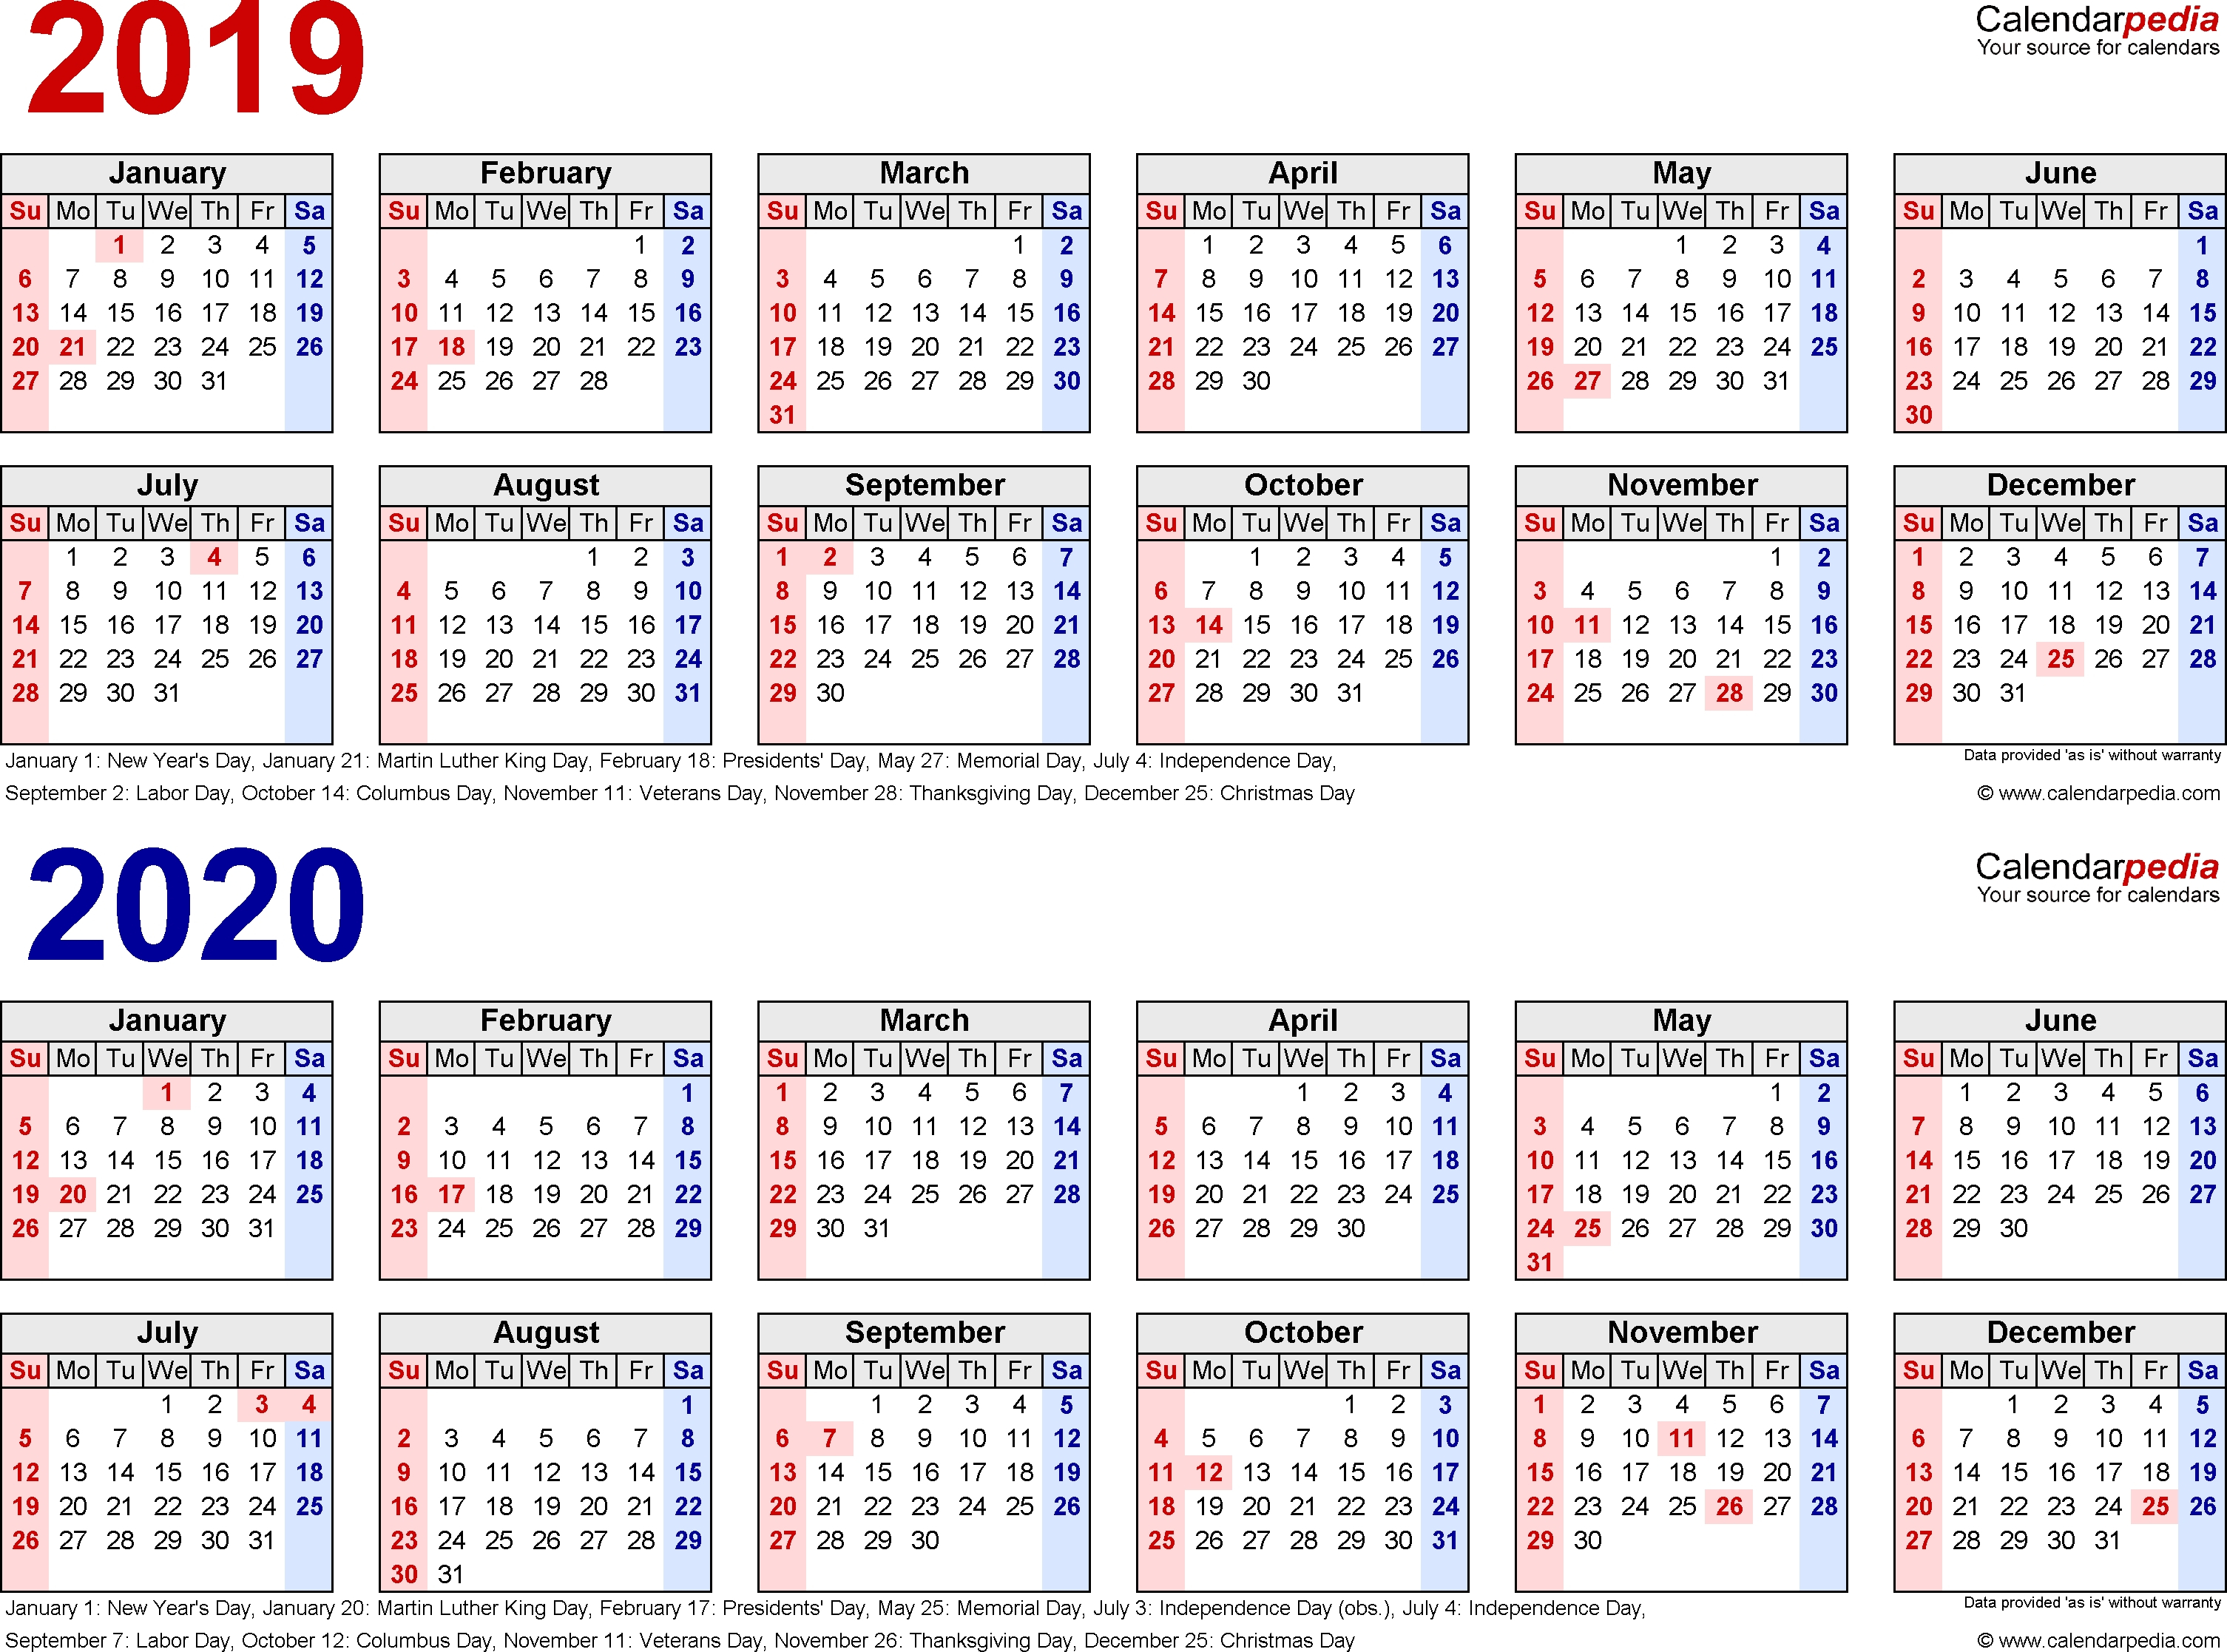 2020 Calendar Download Word